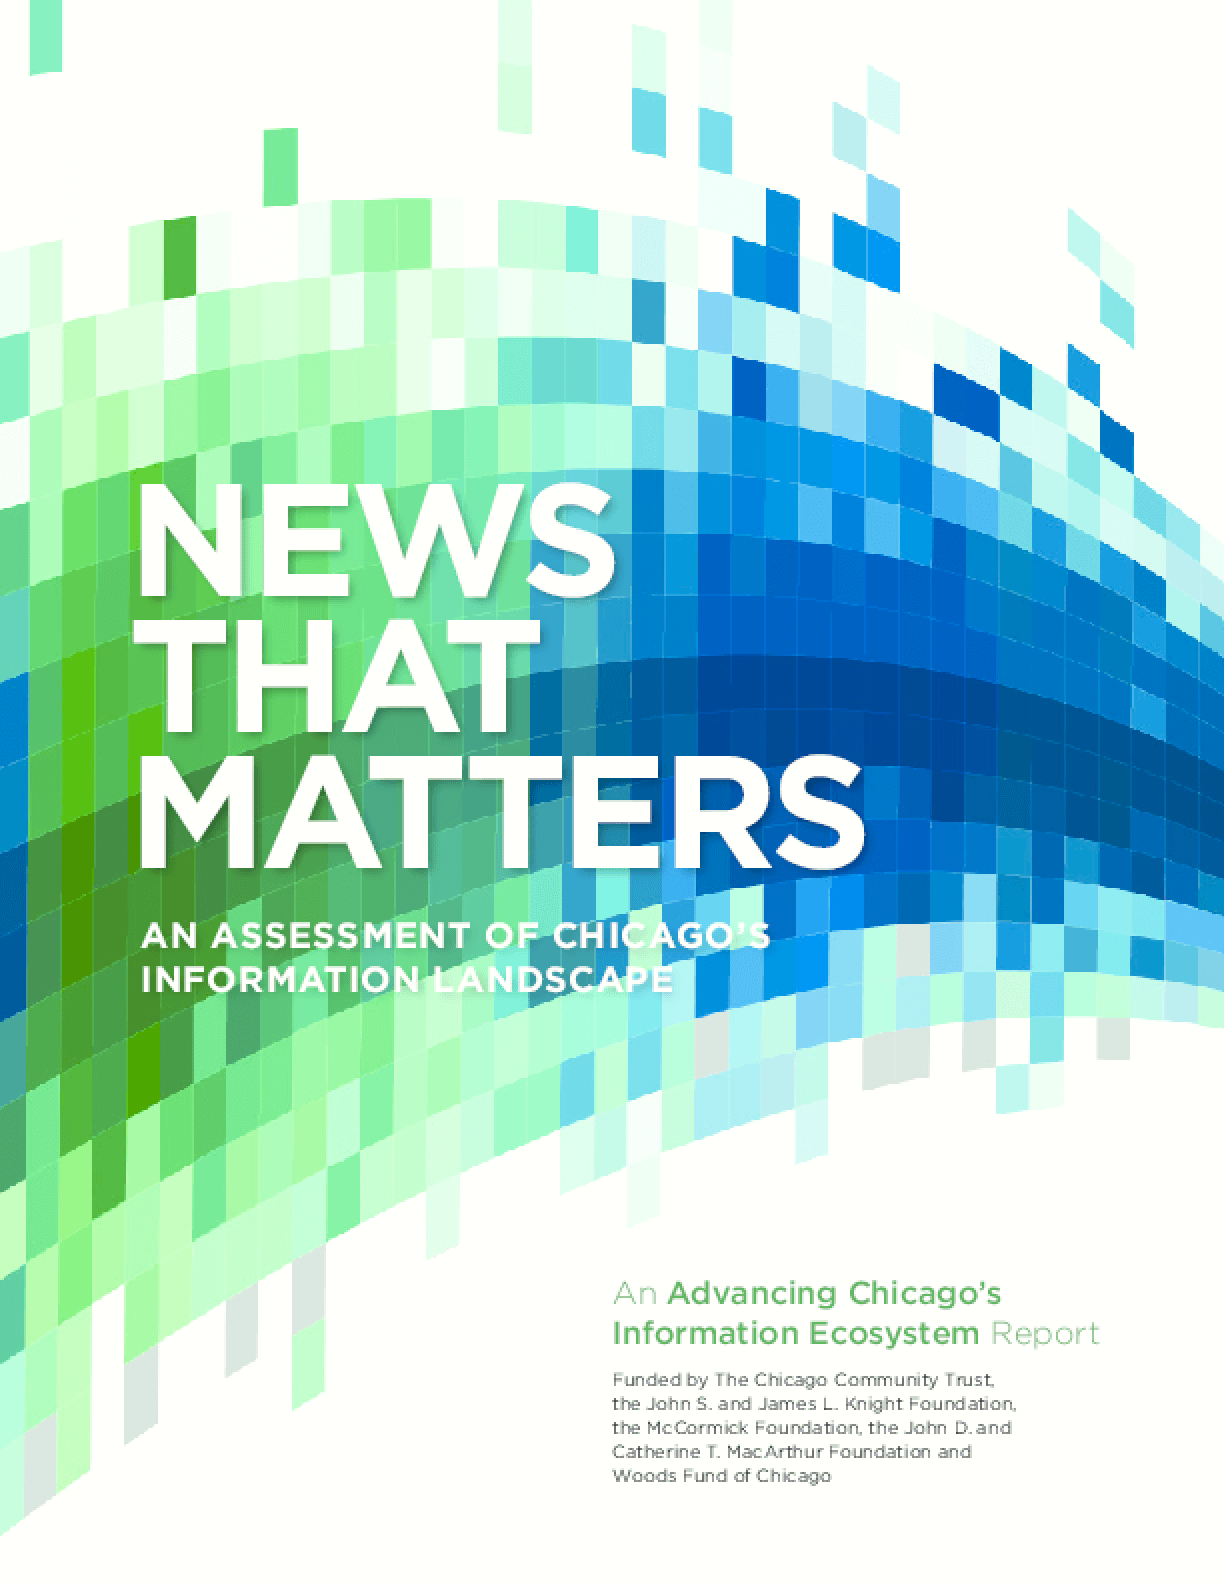 News That Matters: An Assessment of Chicago's Information Landscape